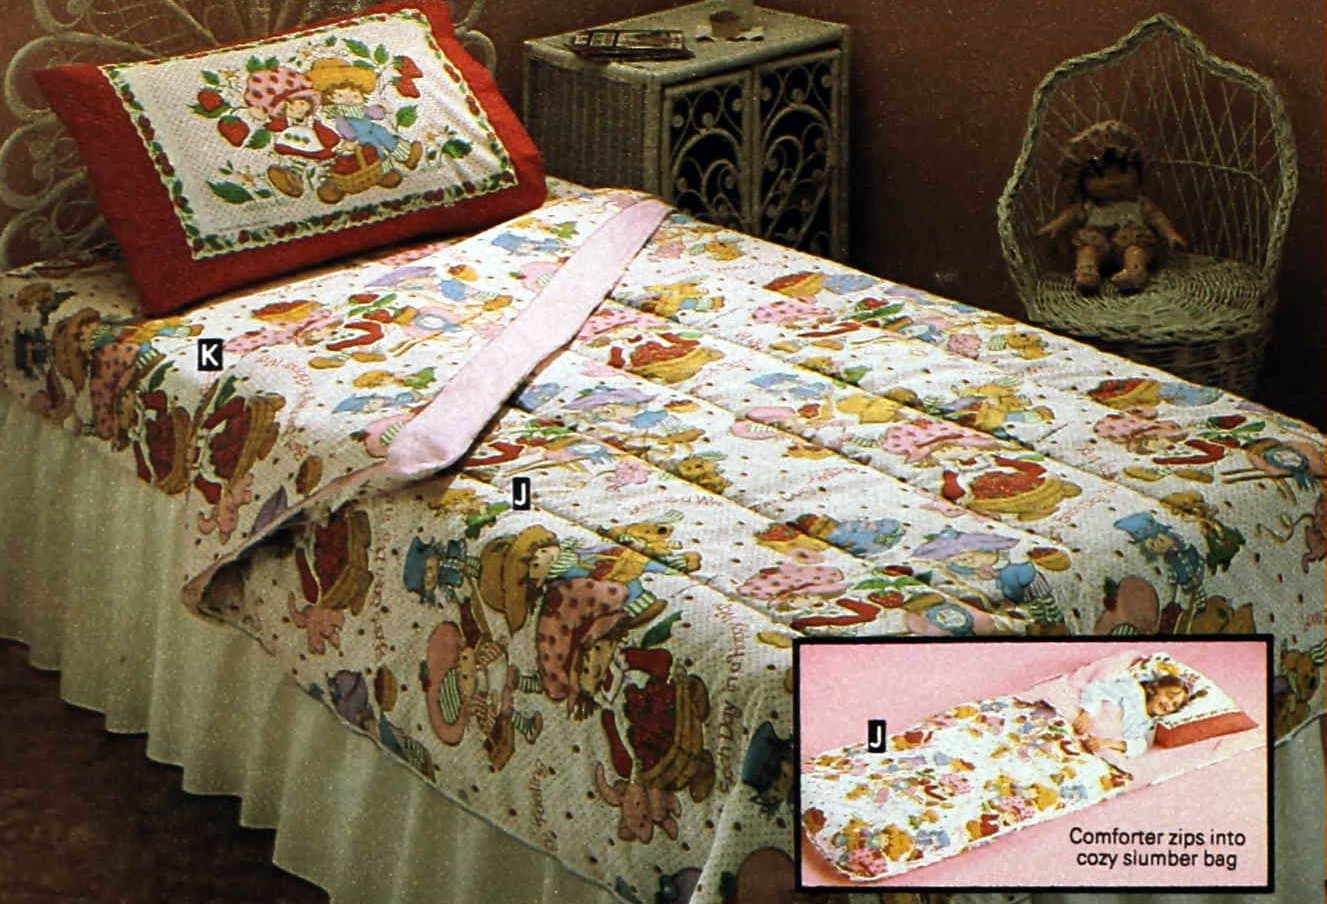 Vintage 80s Strawberry Shortcake comforter that turns into a sleeping bag